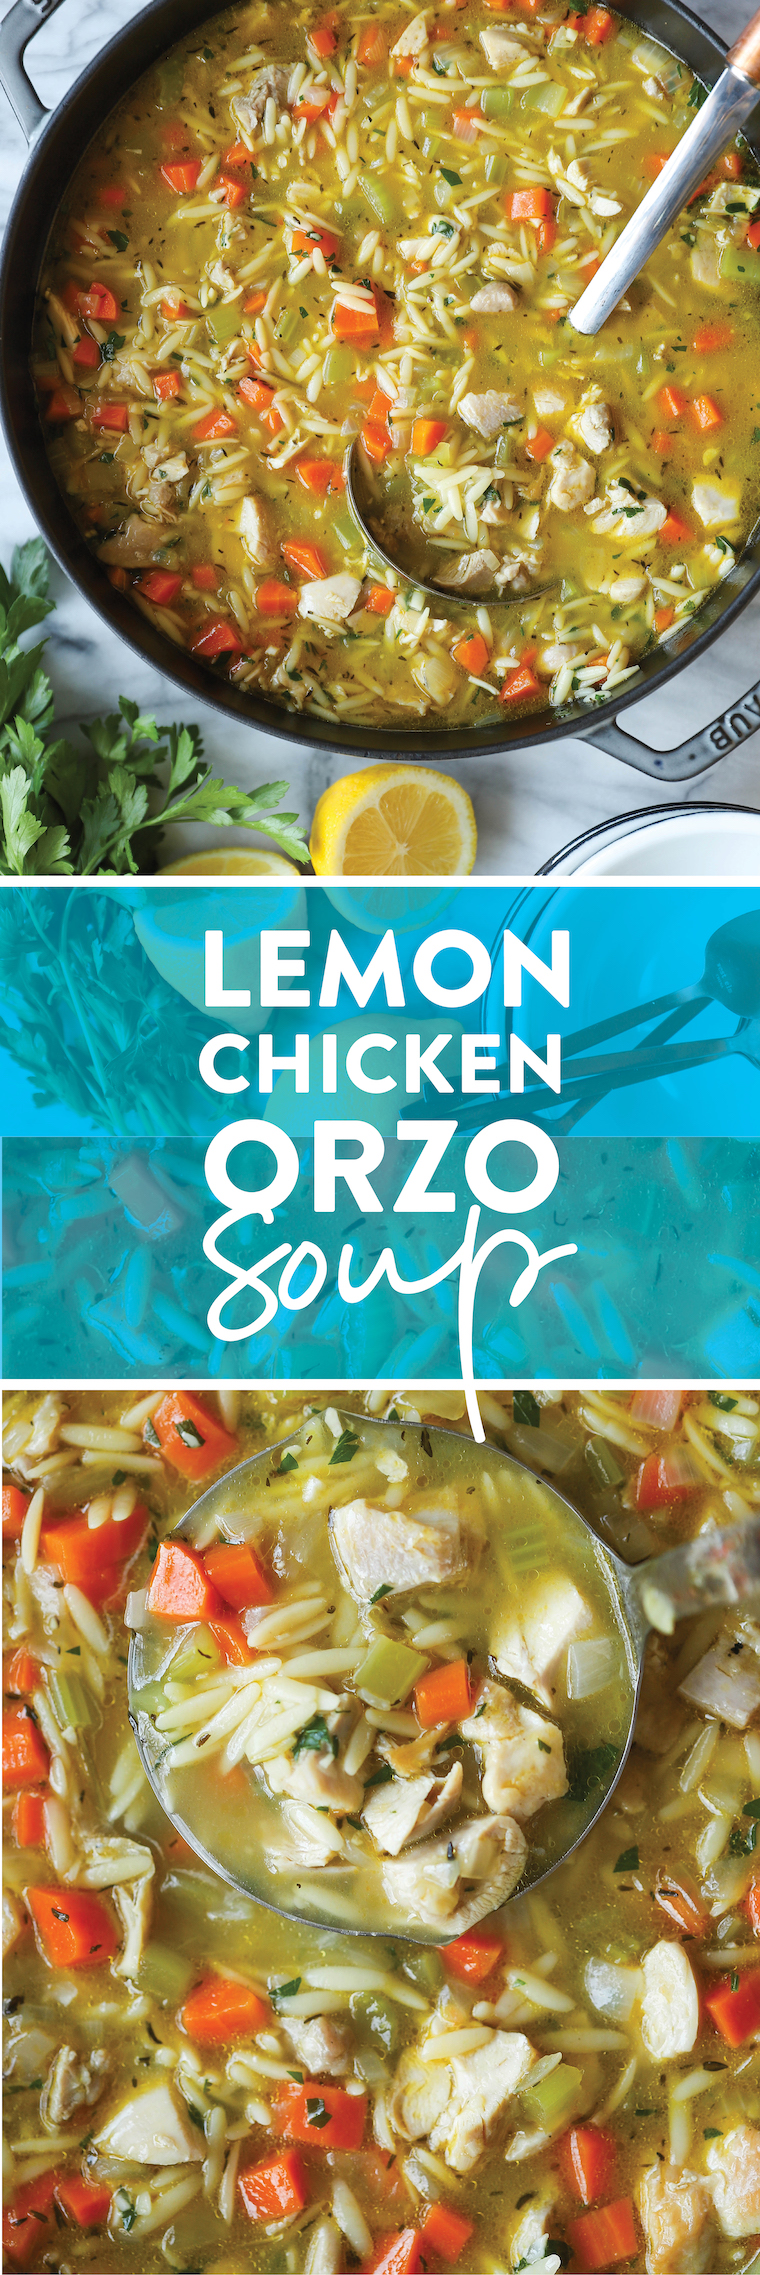 Lemon Chicken Orzo Soup - Chockfull of hearty veggies and tender chicken in a refreshing lemony broth. It is PURE COMFORT in a bowl!